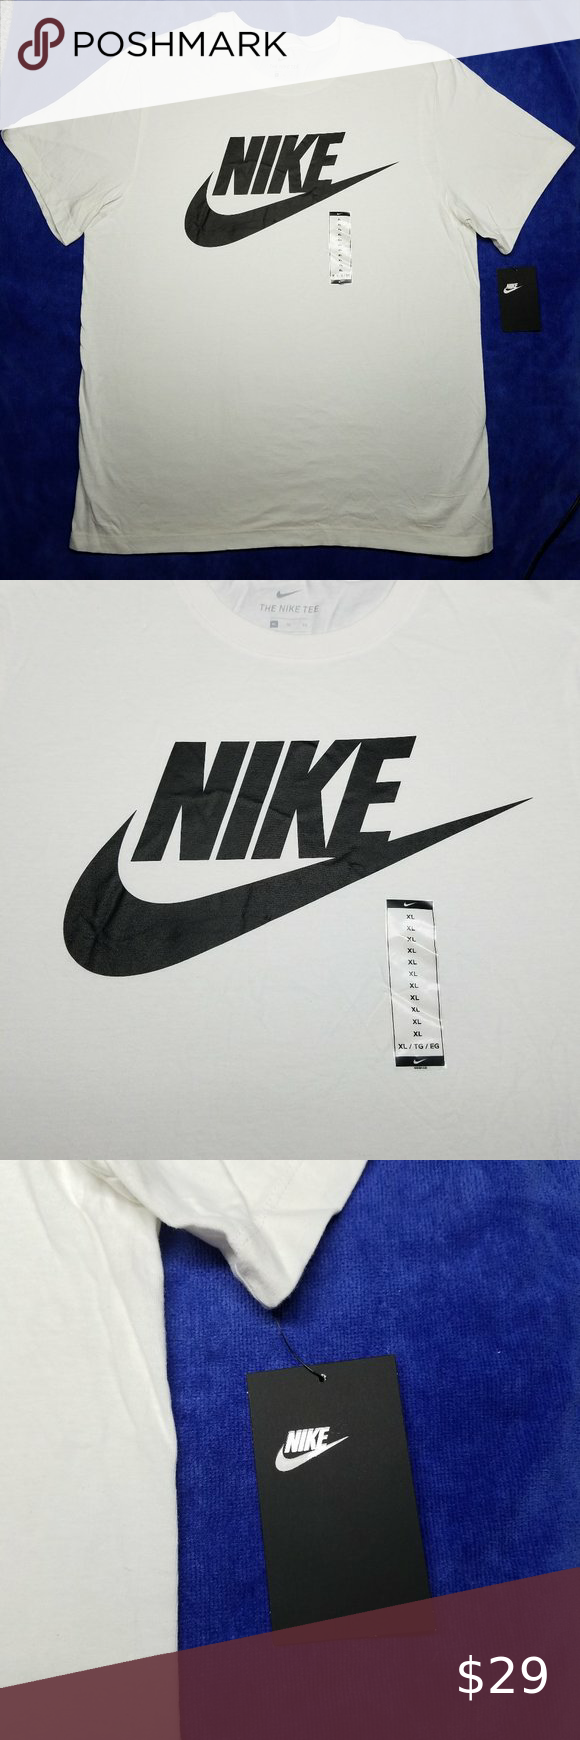 Nike SWOOSH Logo TShirt XL NEW Porcelain White NWT in